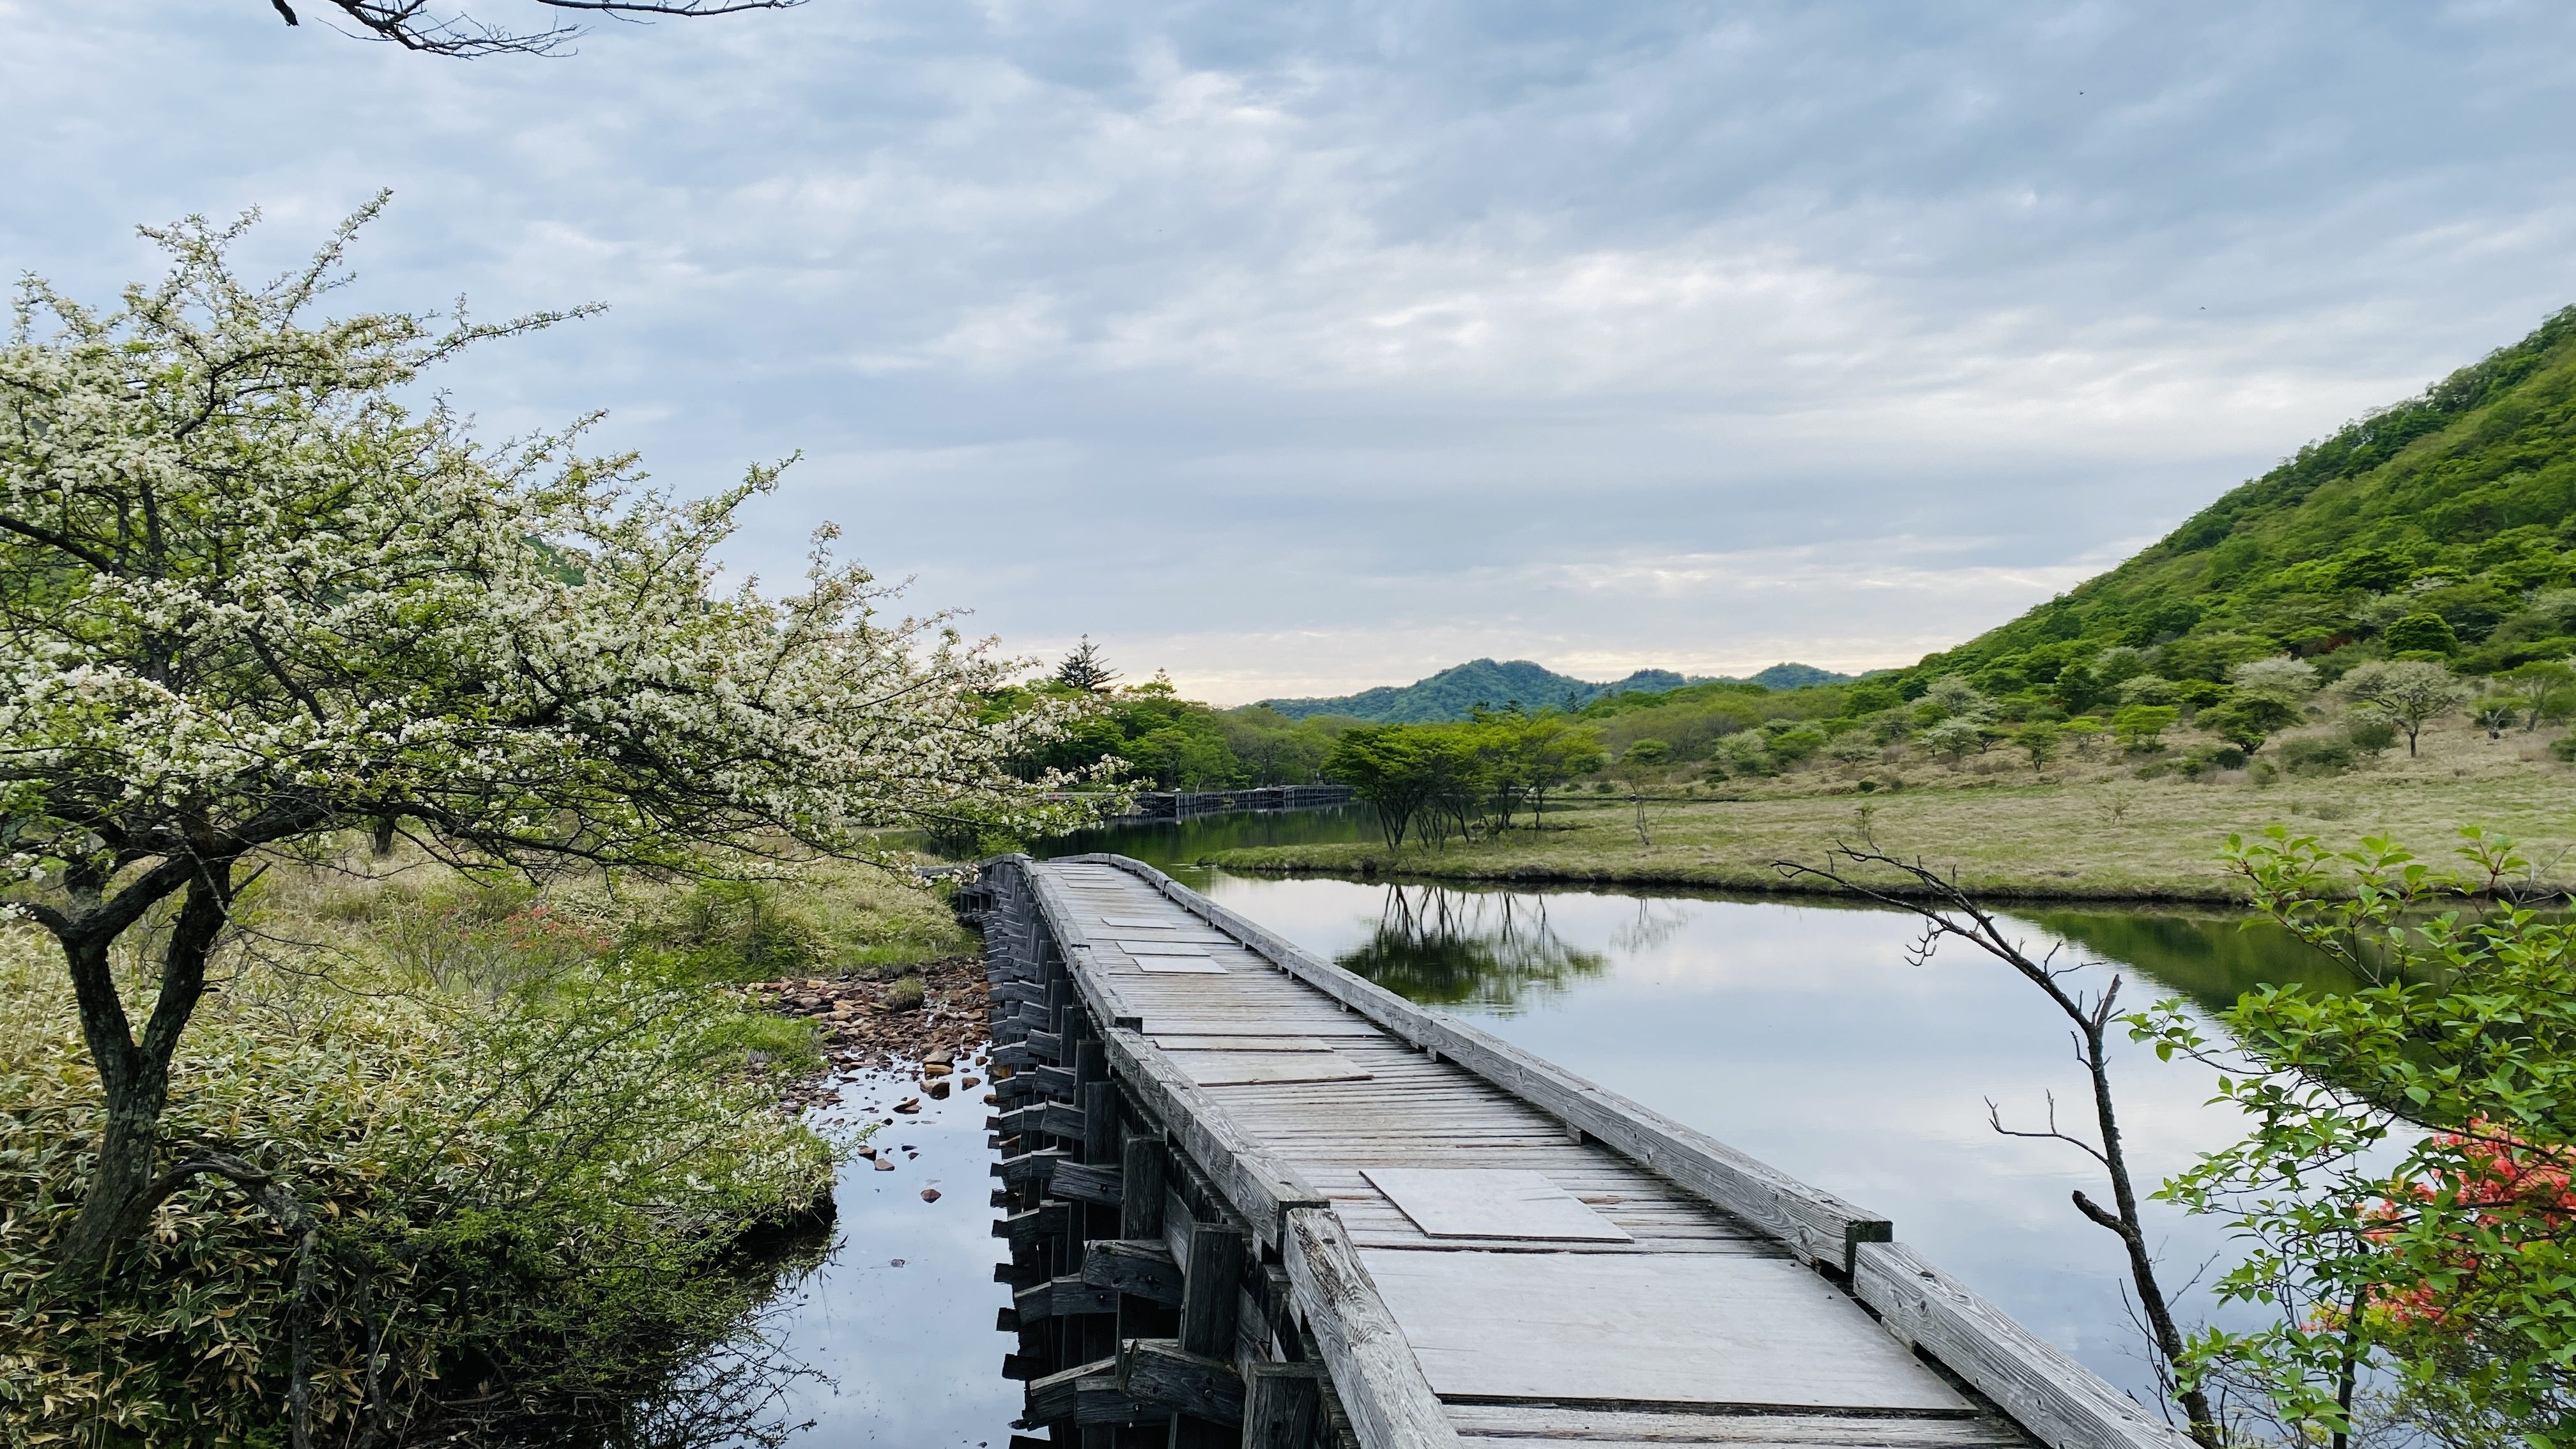 boardwalk across mirrored lake with white crabapple blossom tree on one side